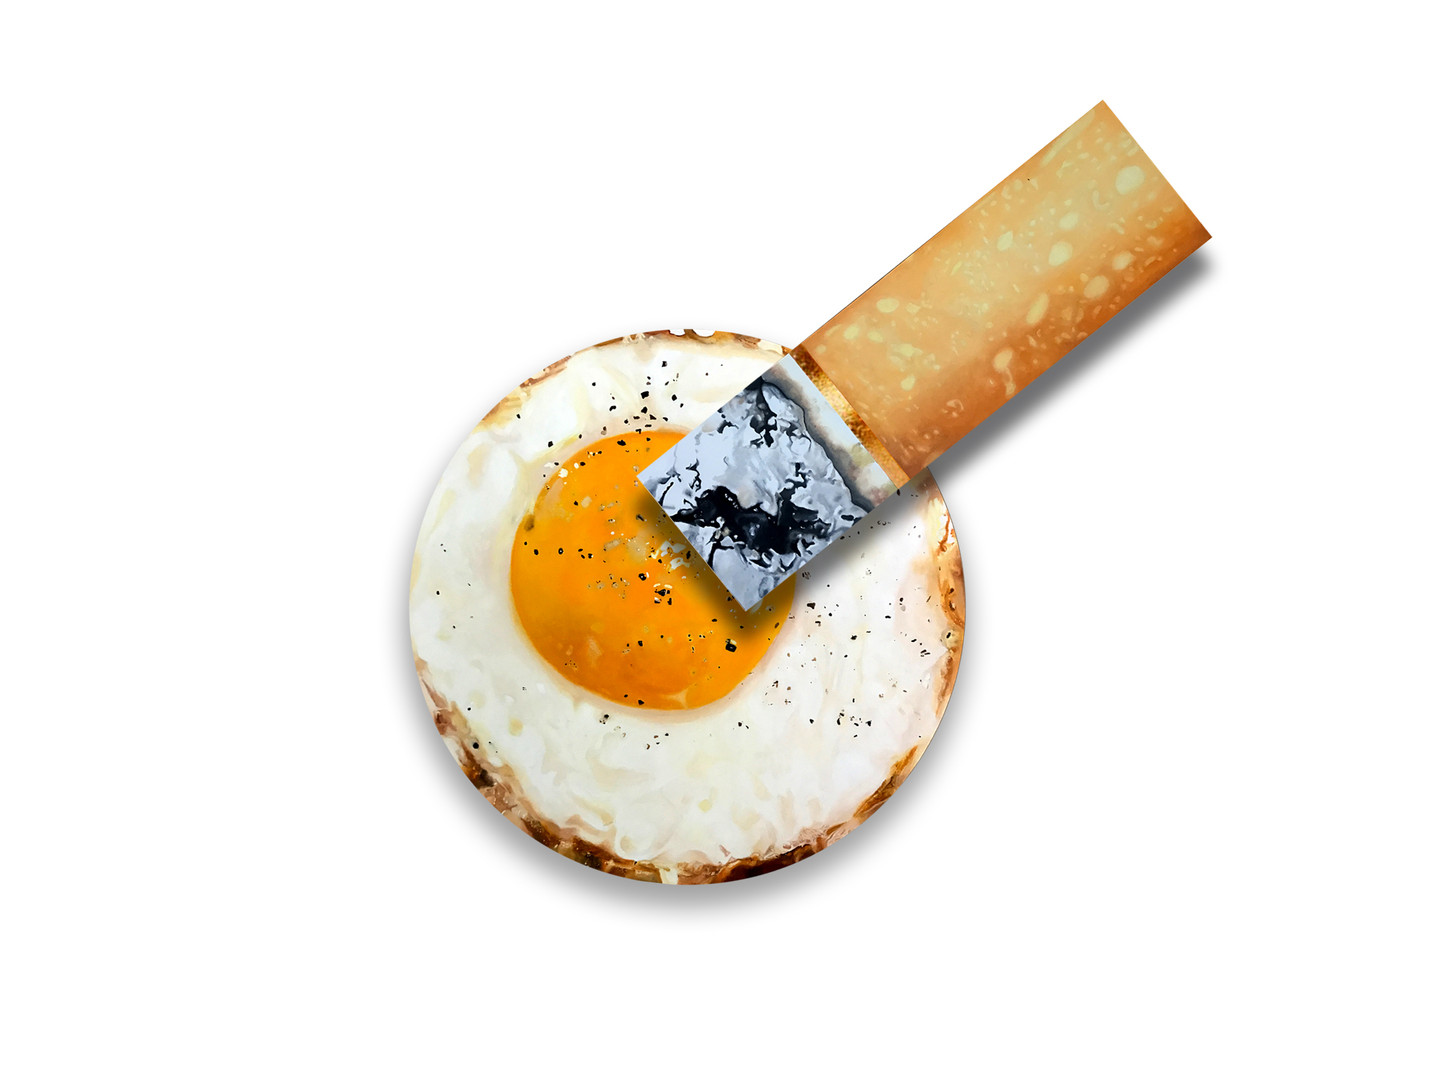 Fried Egg and Burnt Cigarette, 2017